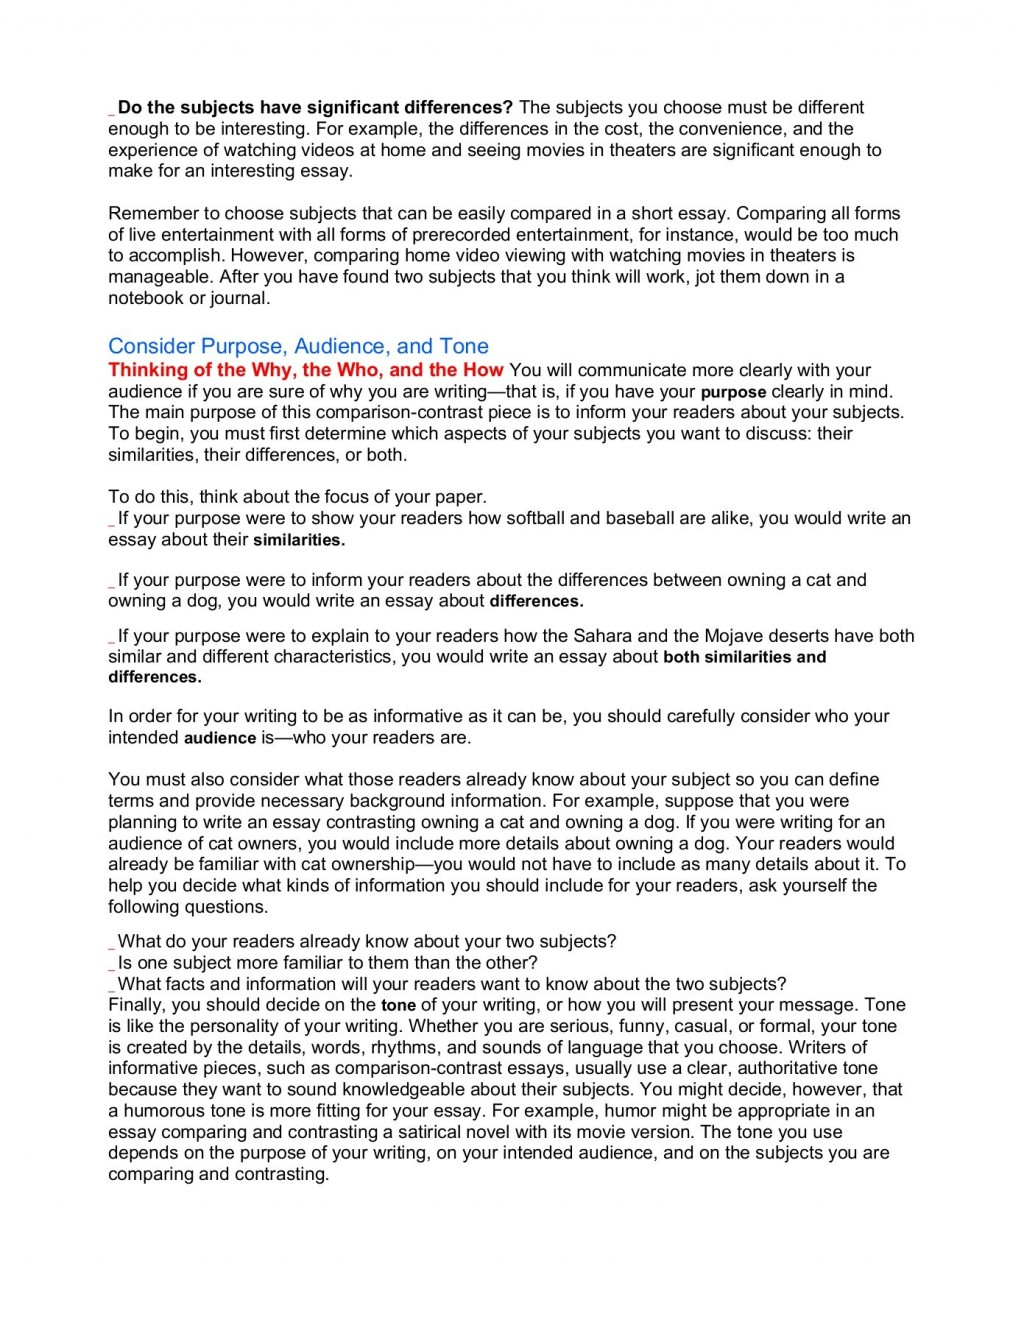 012 Comparing And Contrasting Essay Unique Comparison Contrast Sample Pdf Compare Structure University Topics On Health Large